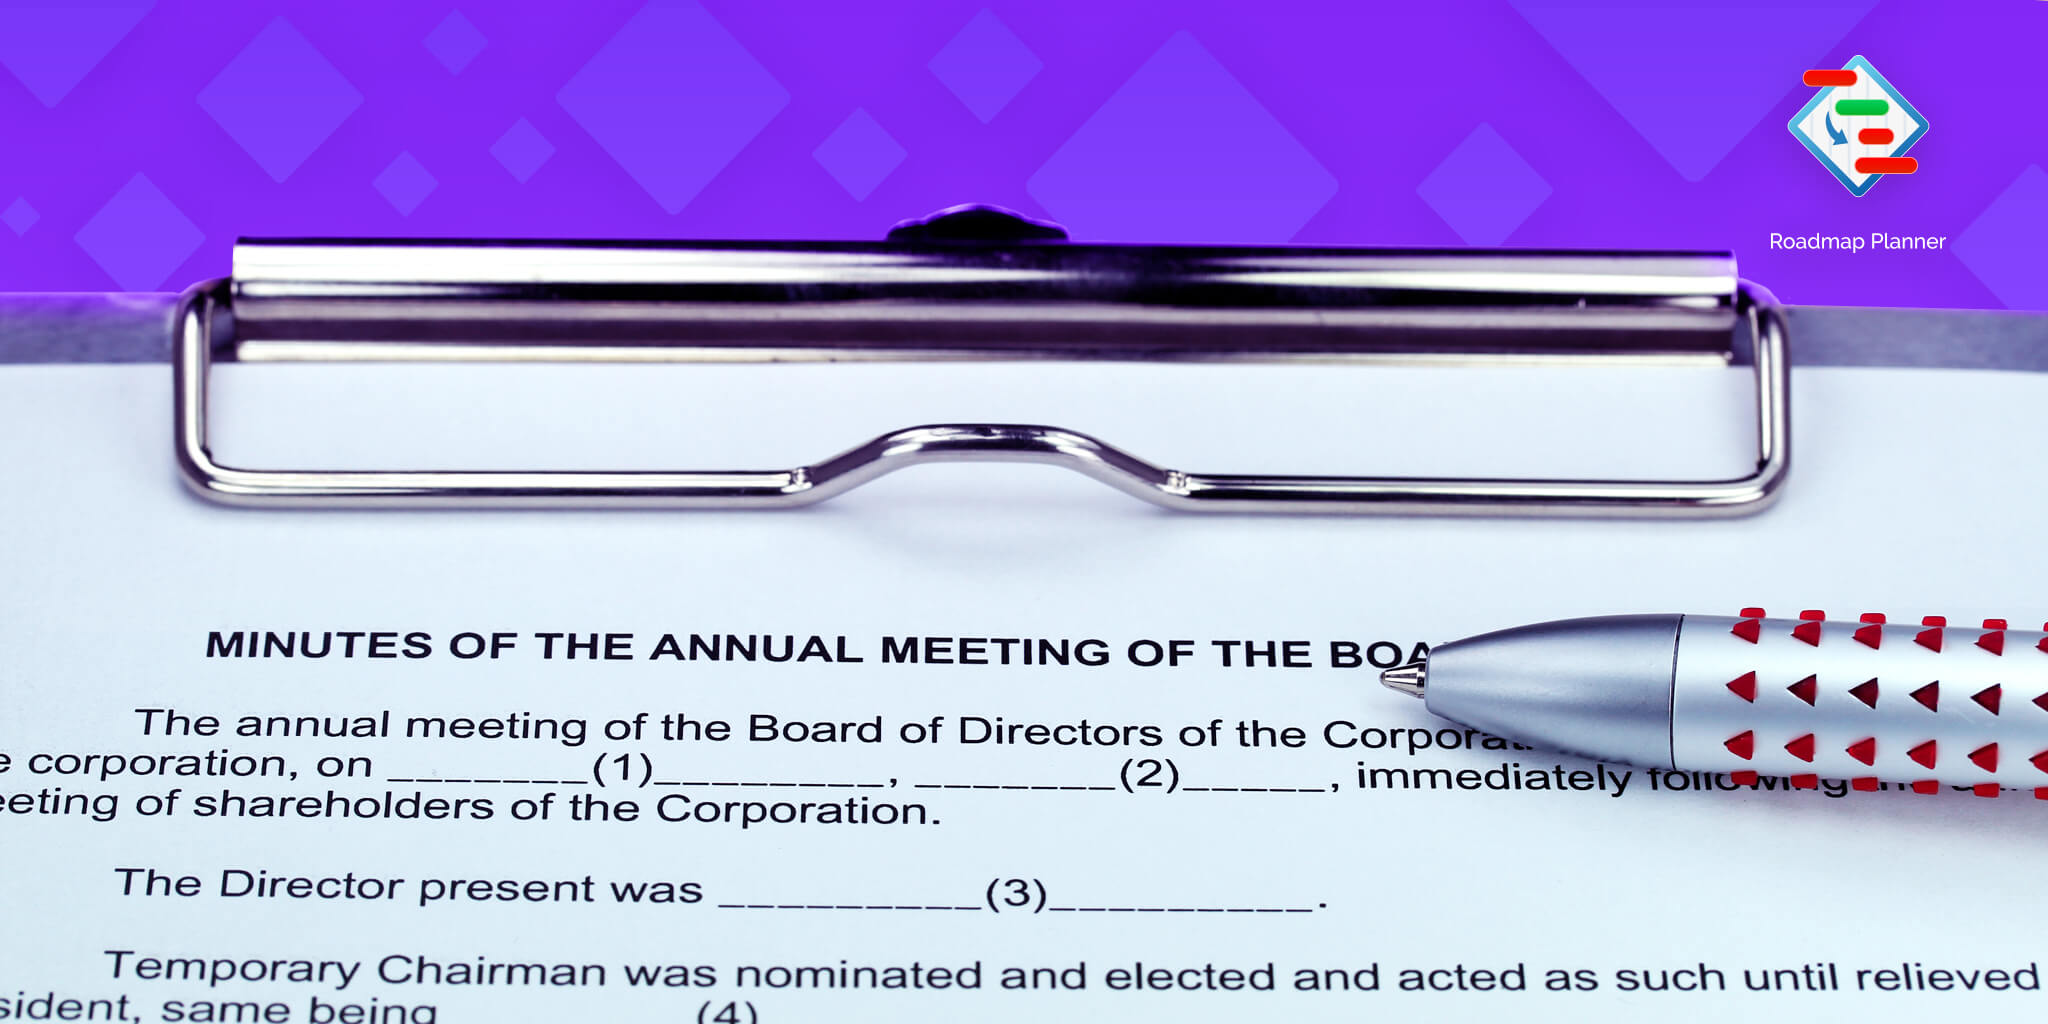 A form for taking the Board meeting minutes, in preparation for the meeting.